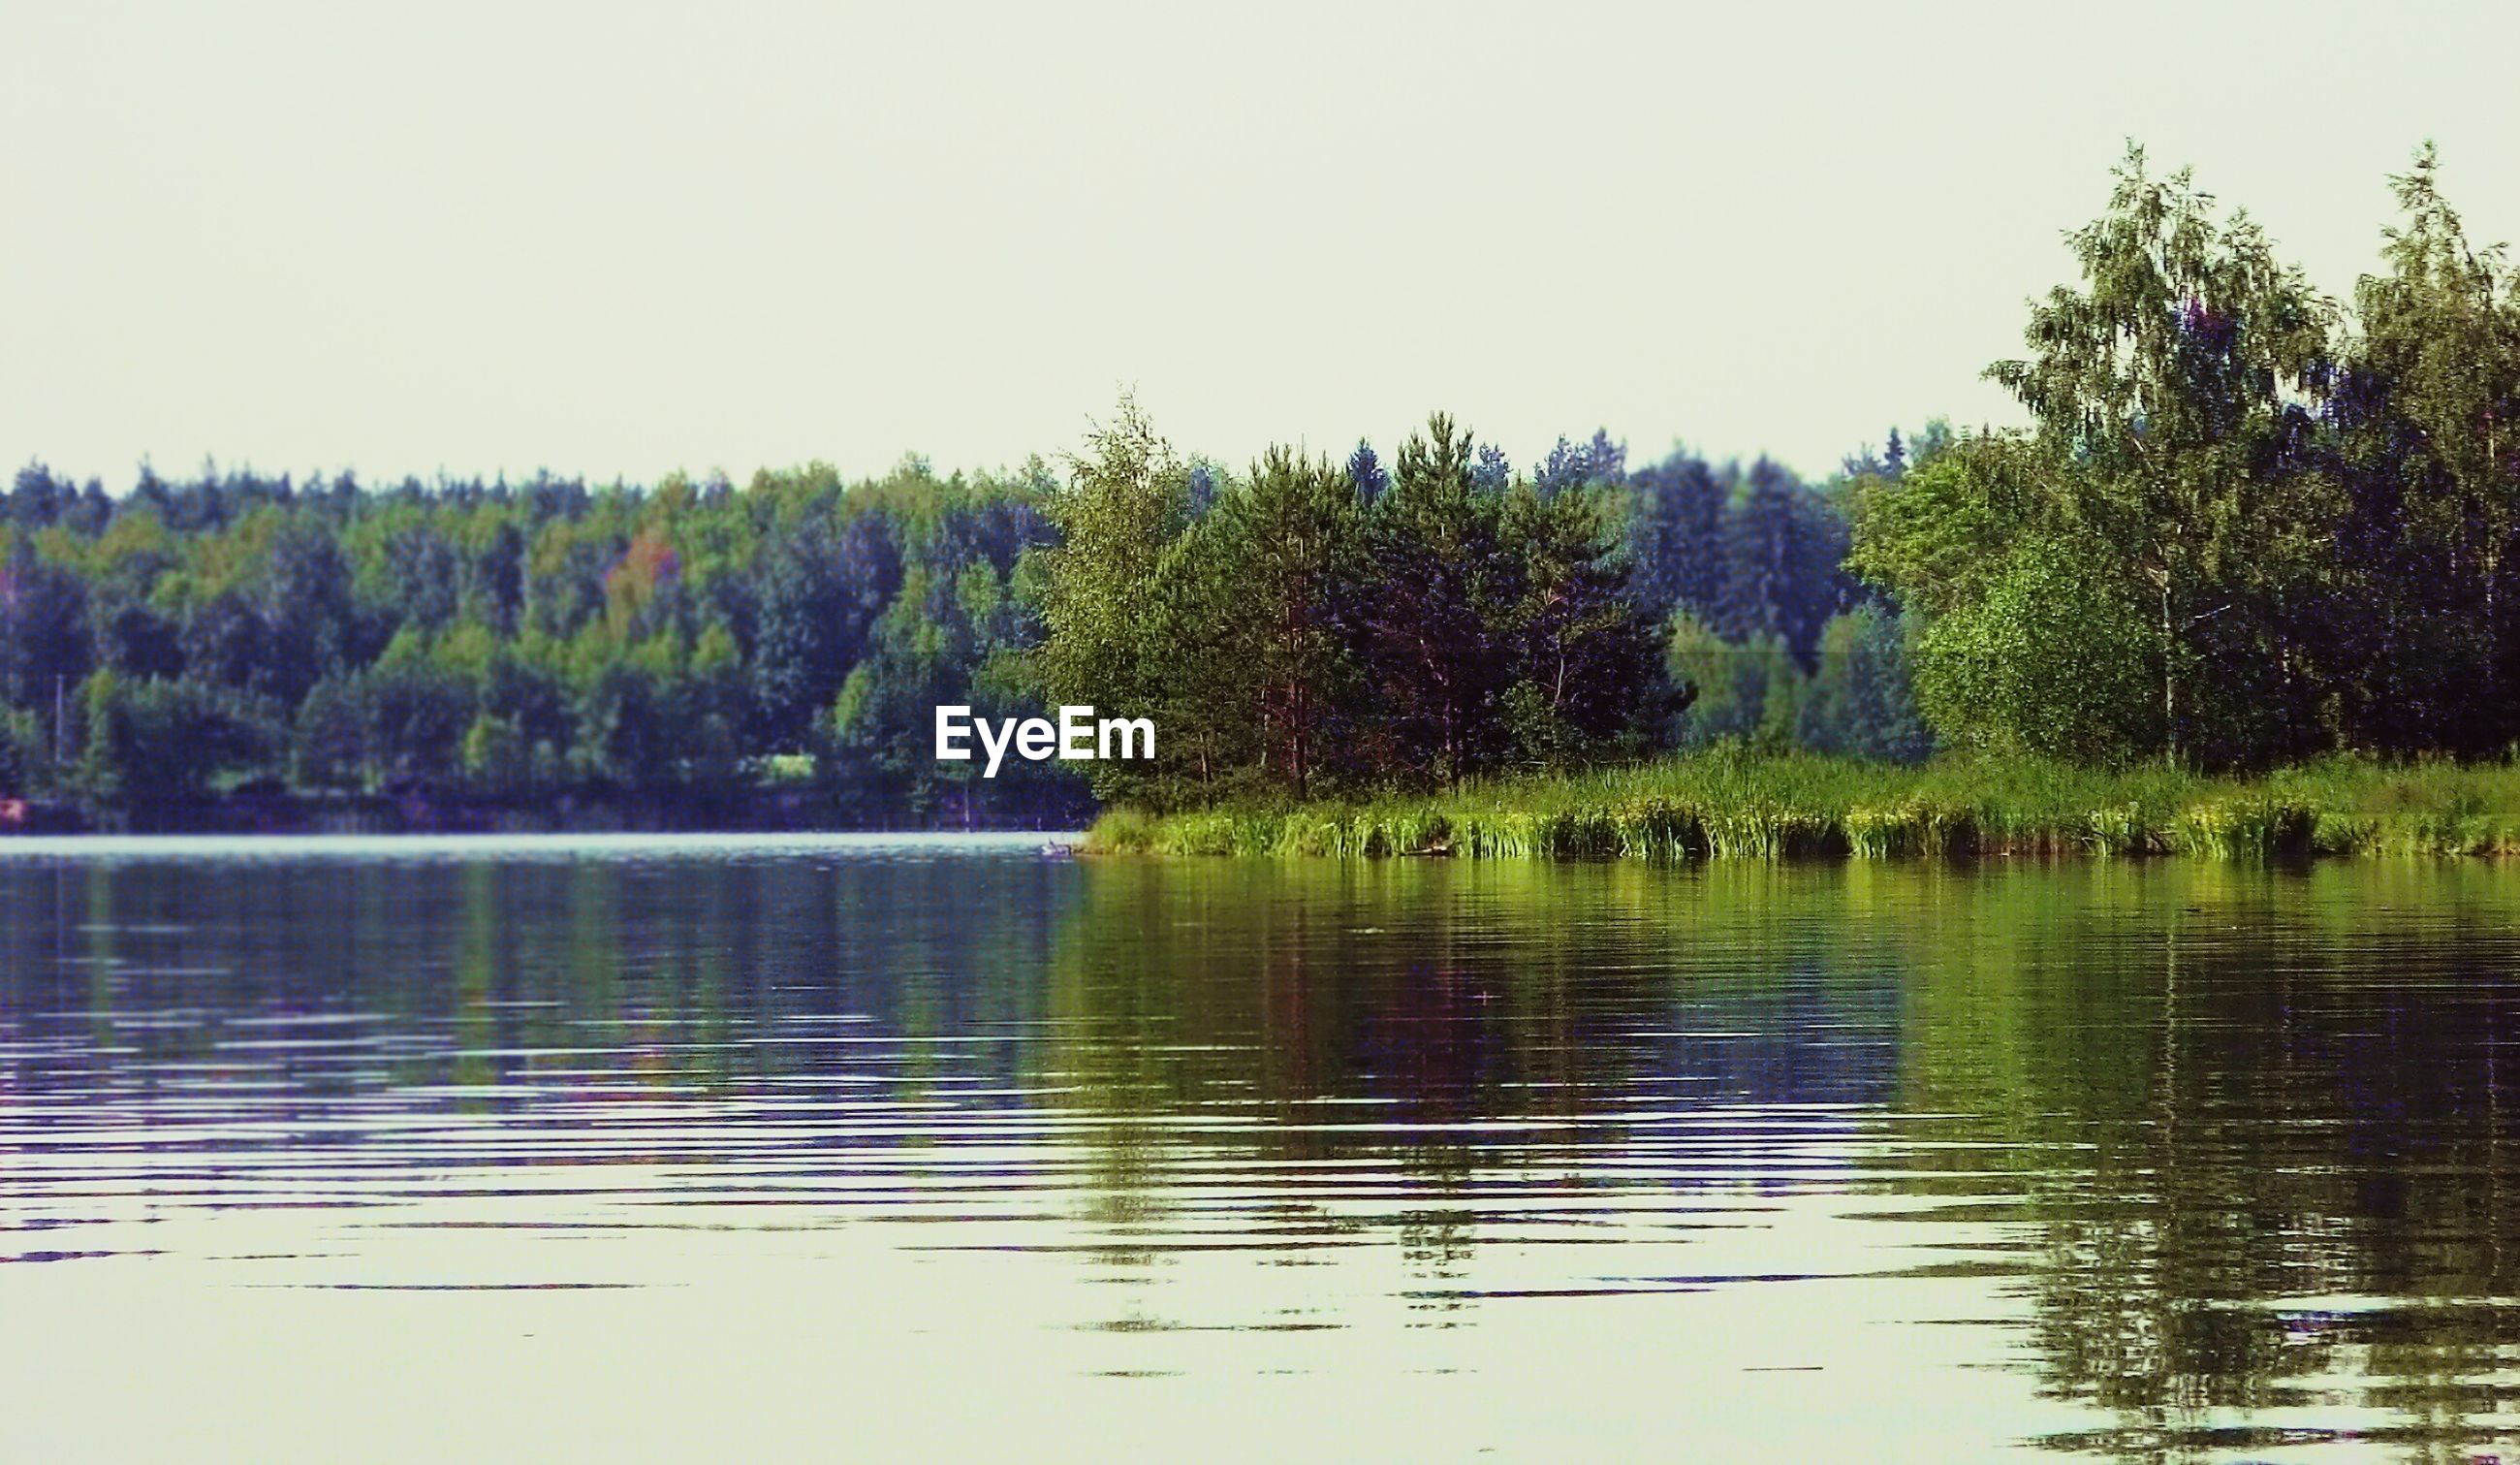 TREES REFLECTING IN LAKE